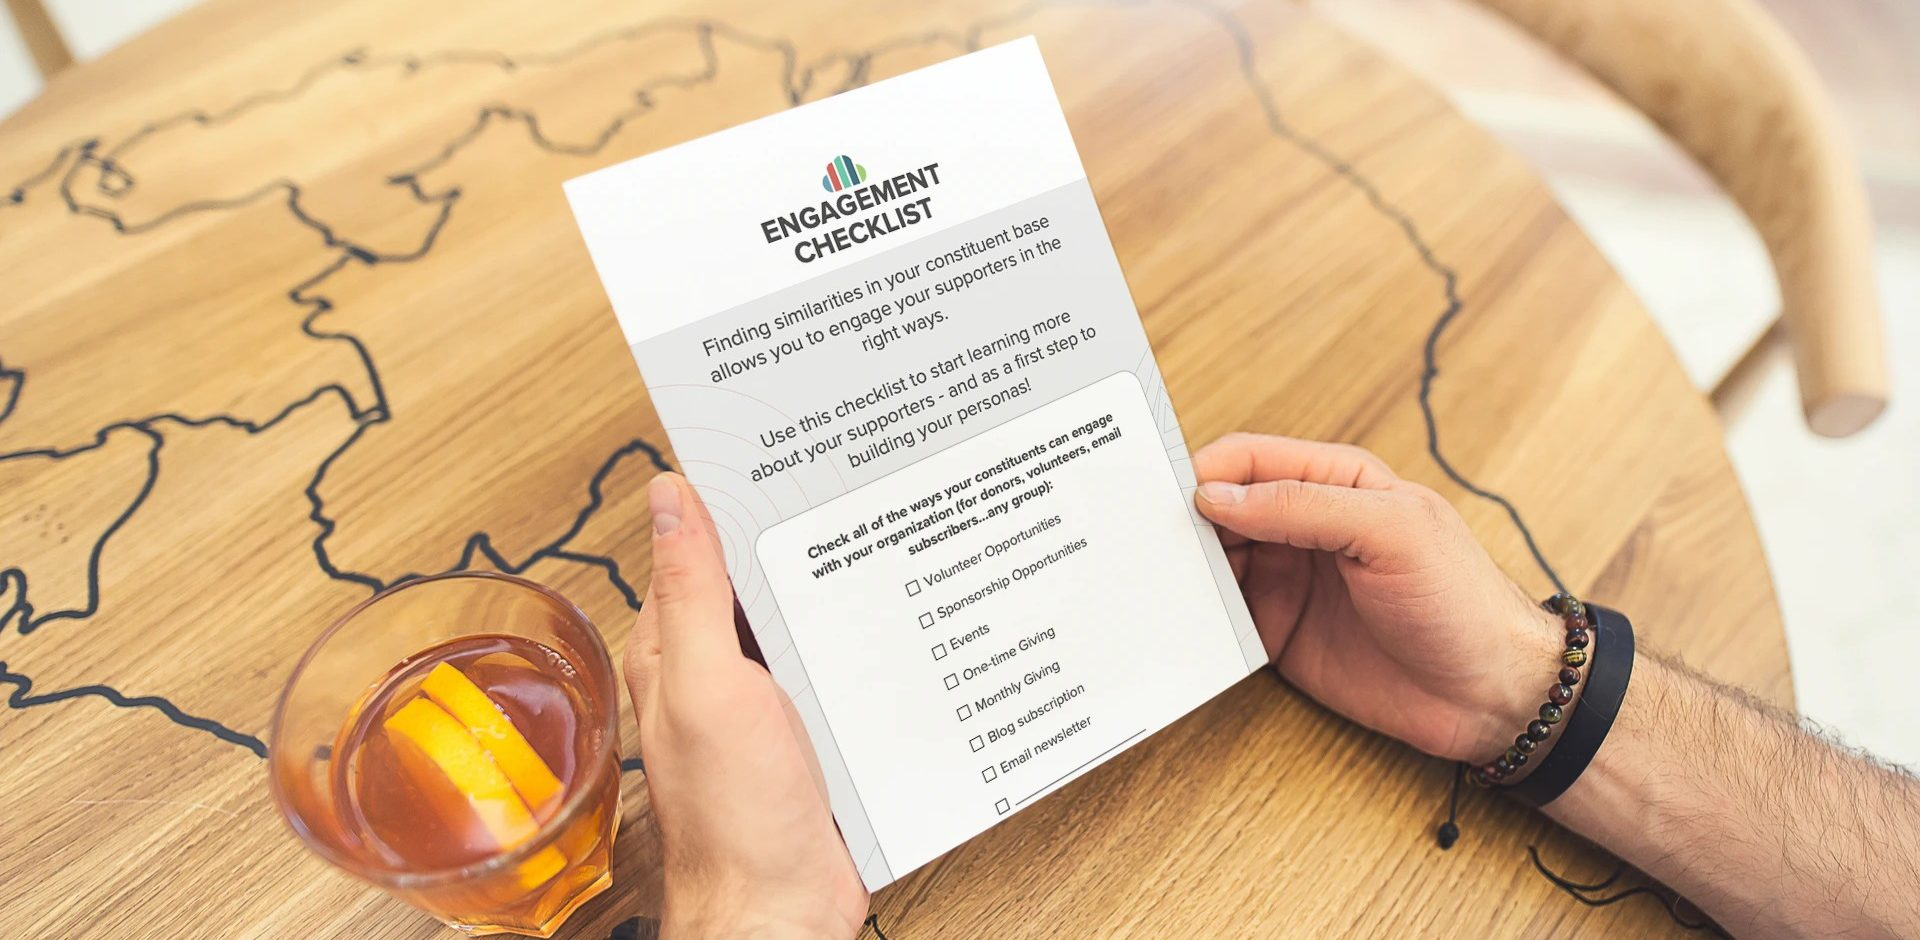 person holding copy of donor engagement checklist